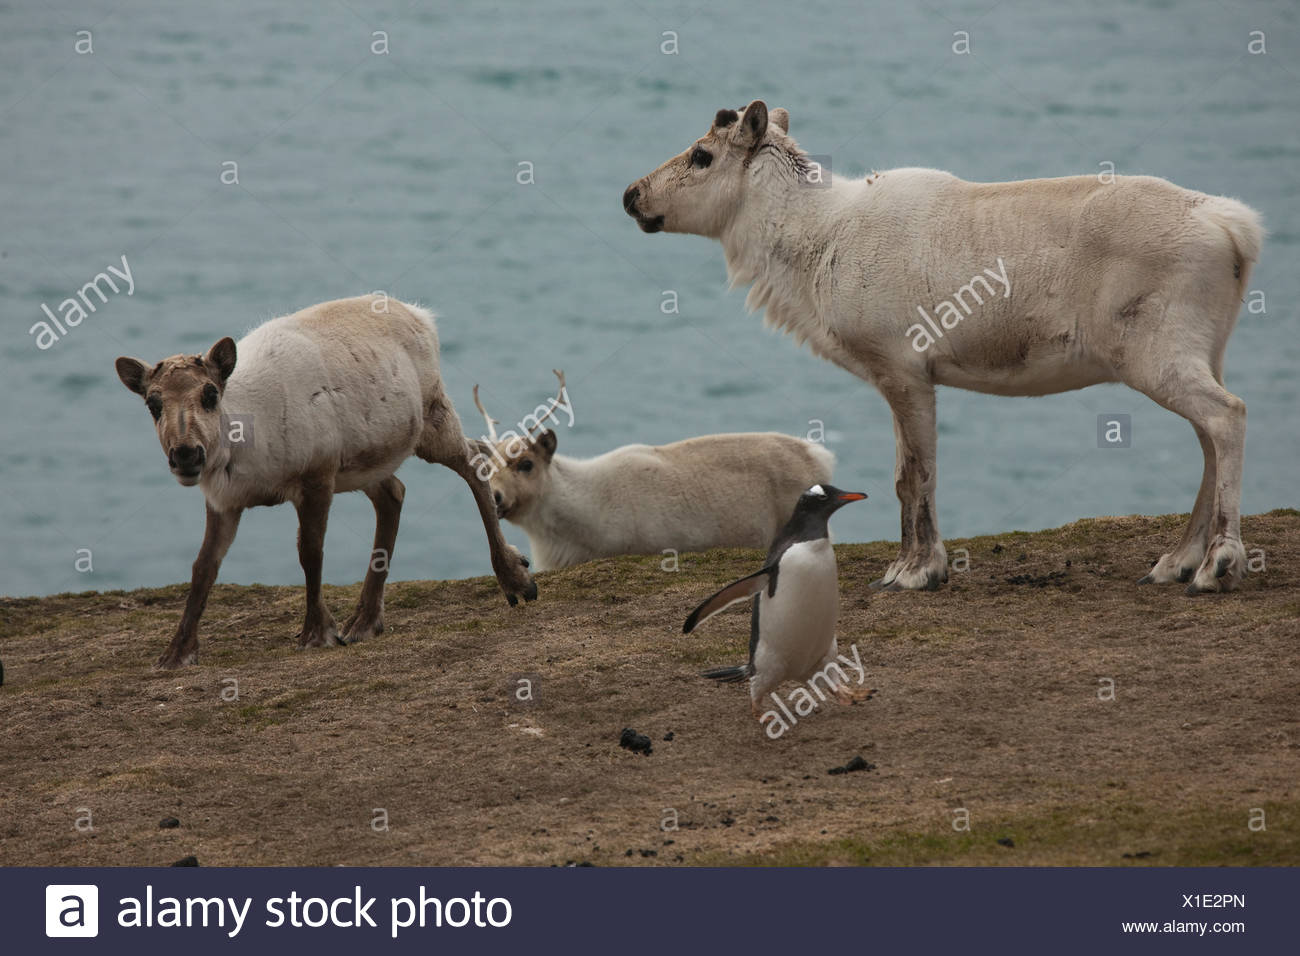 Reindeer and a gentoo penguin on the coast of South Georgia. - Stock Image